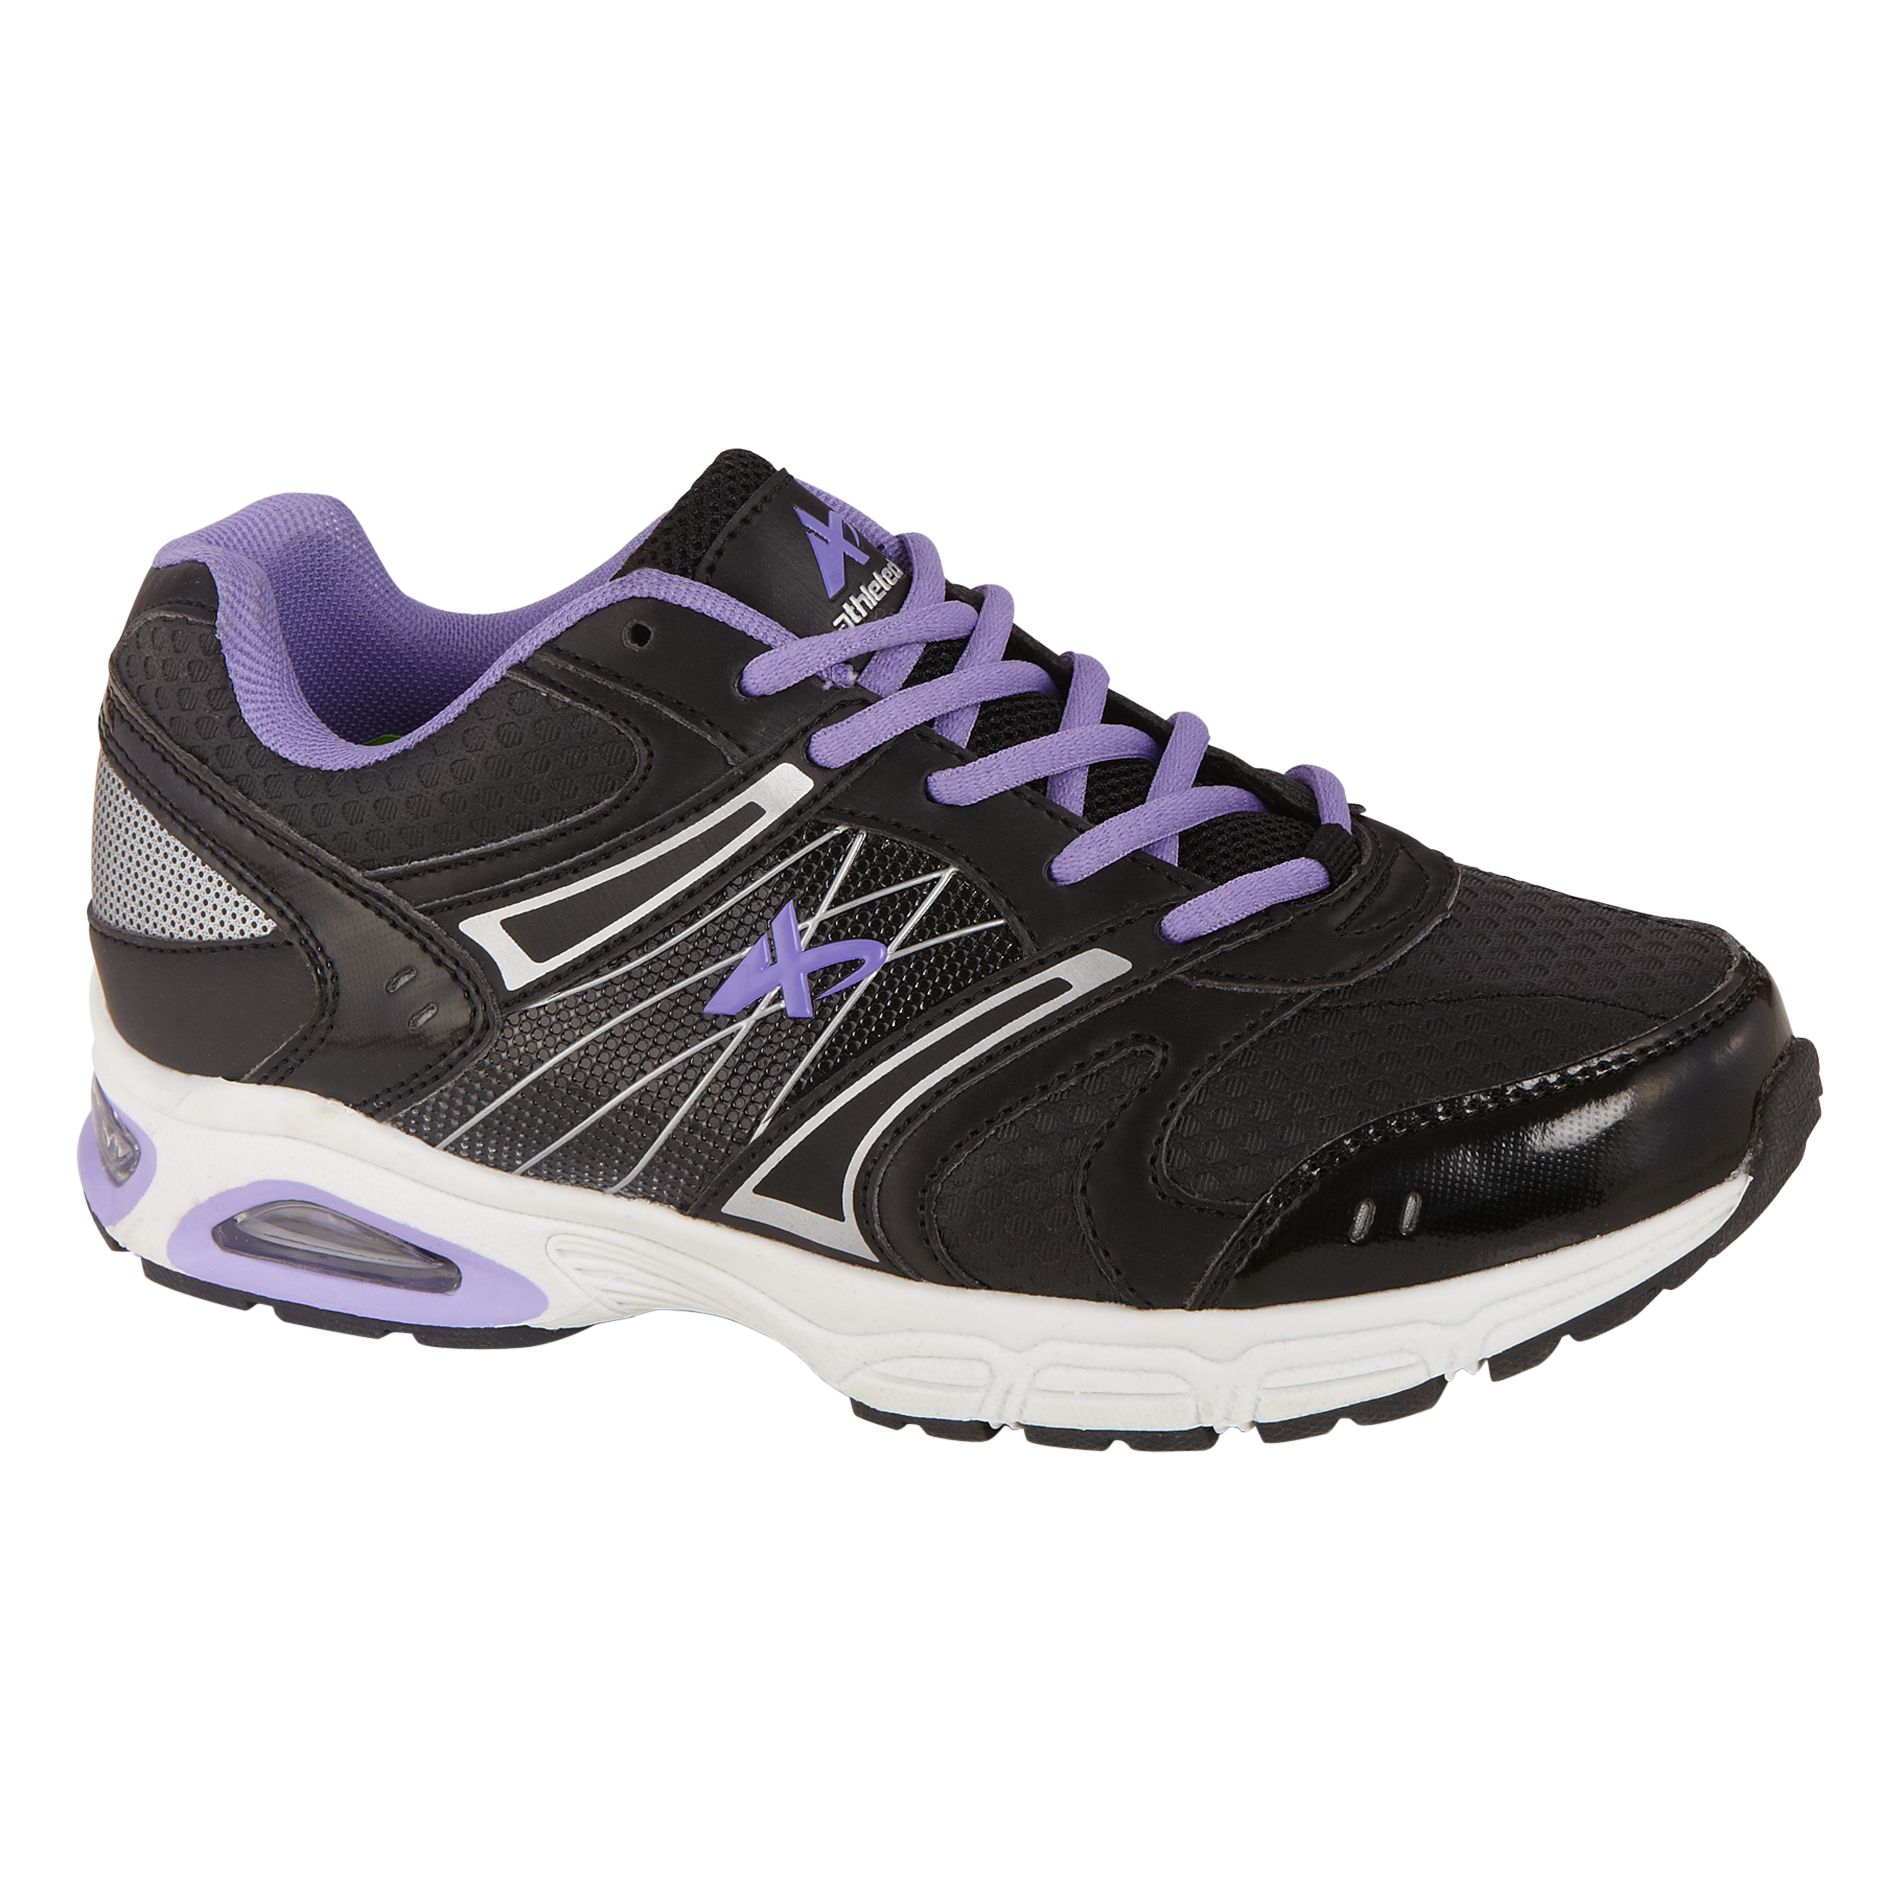 Athletech  Women's Ath L-Sky Way